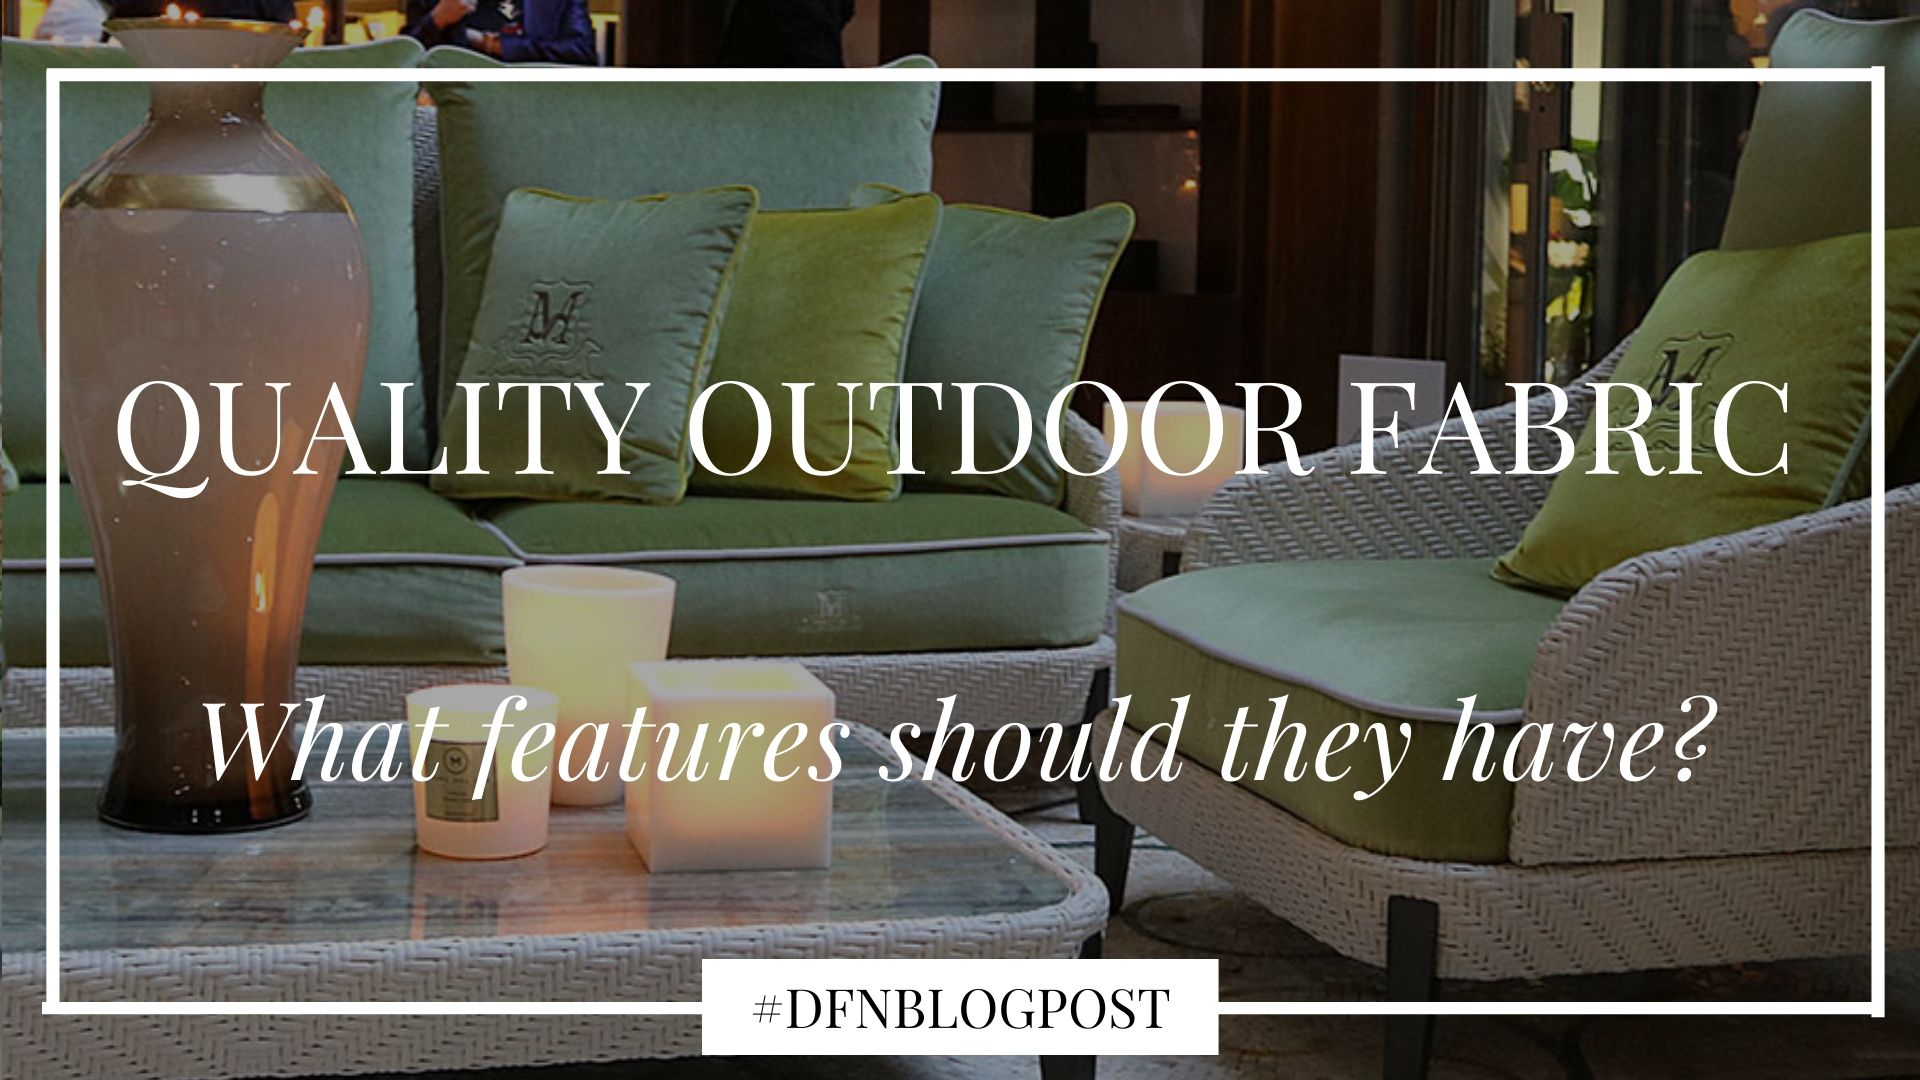 What features should quality outdoor fabric have?